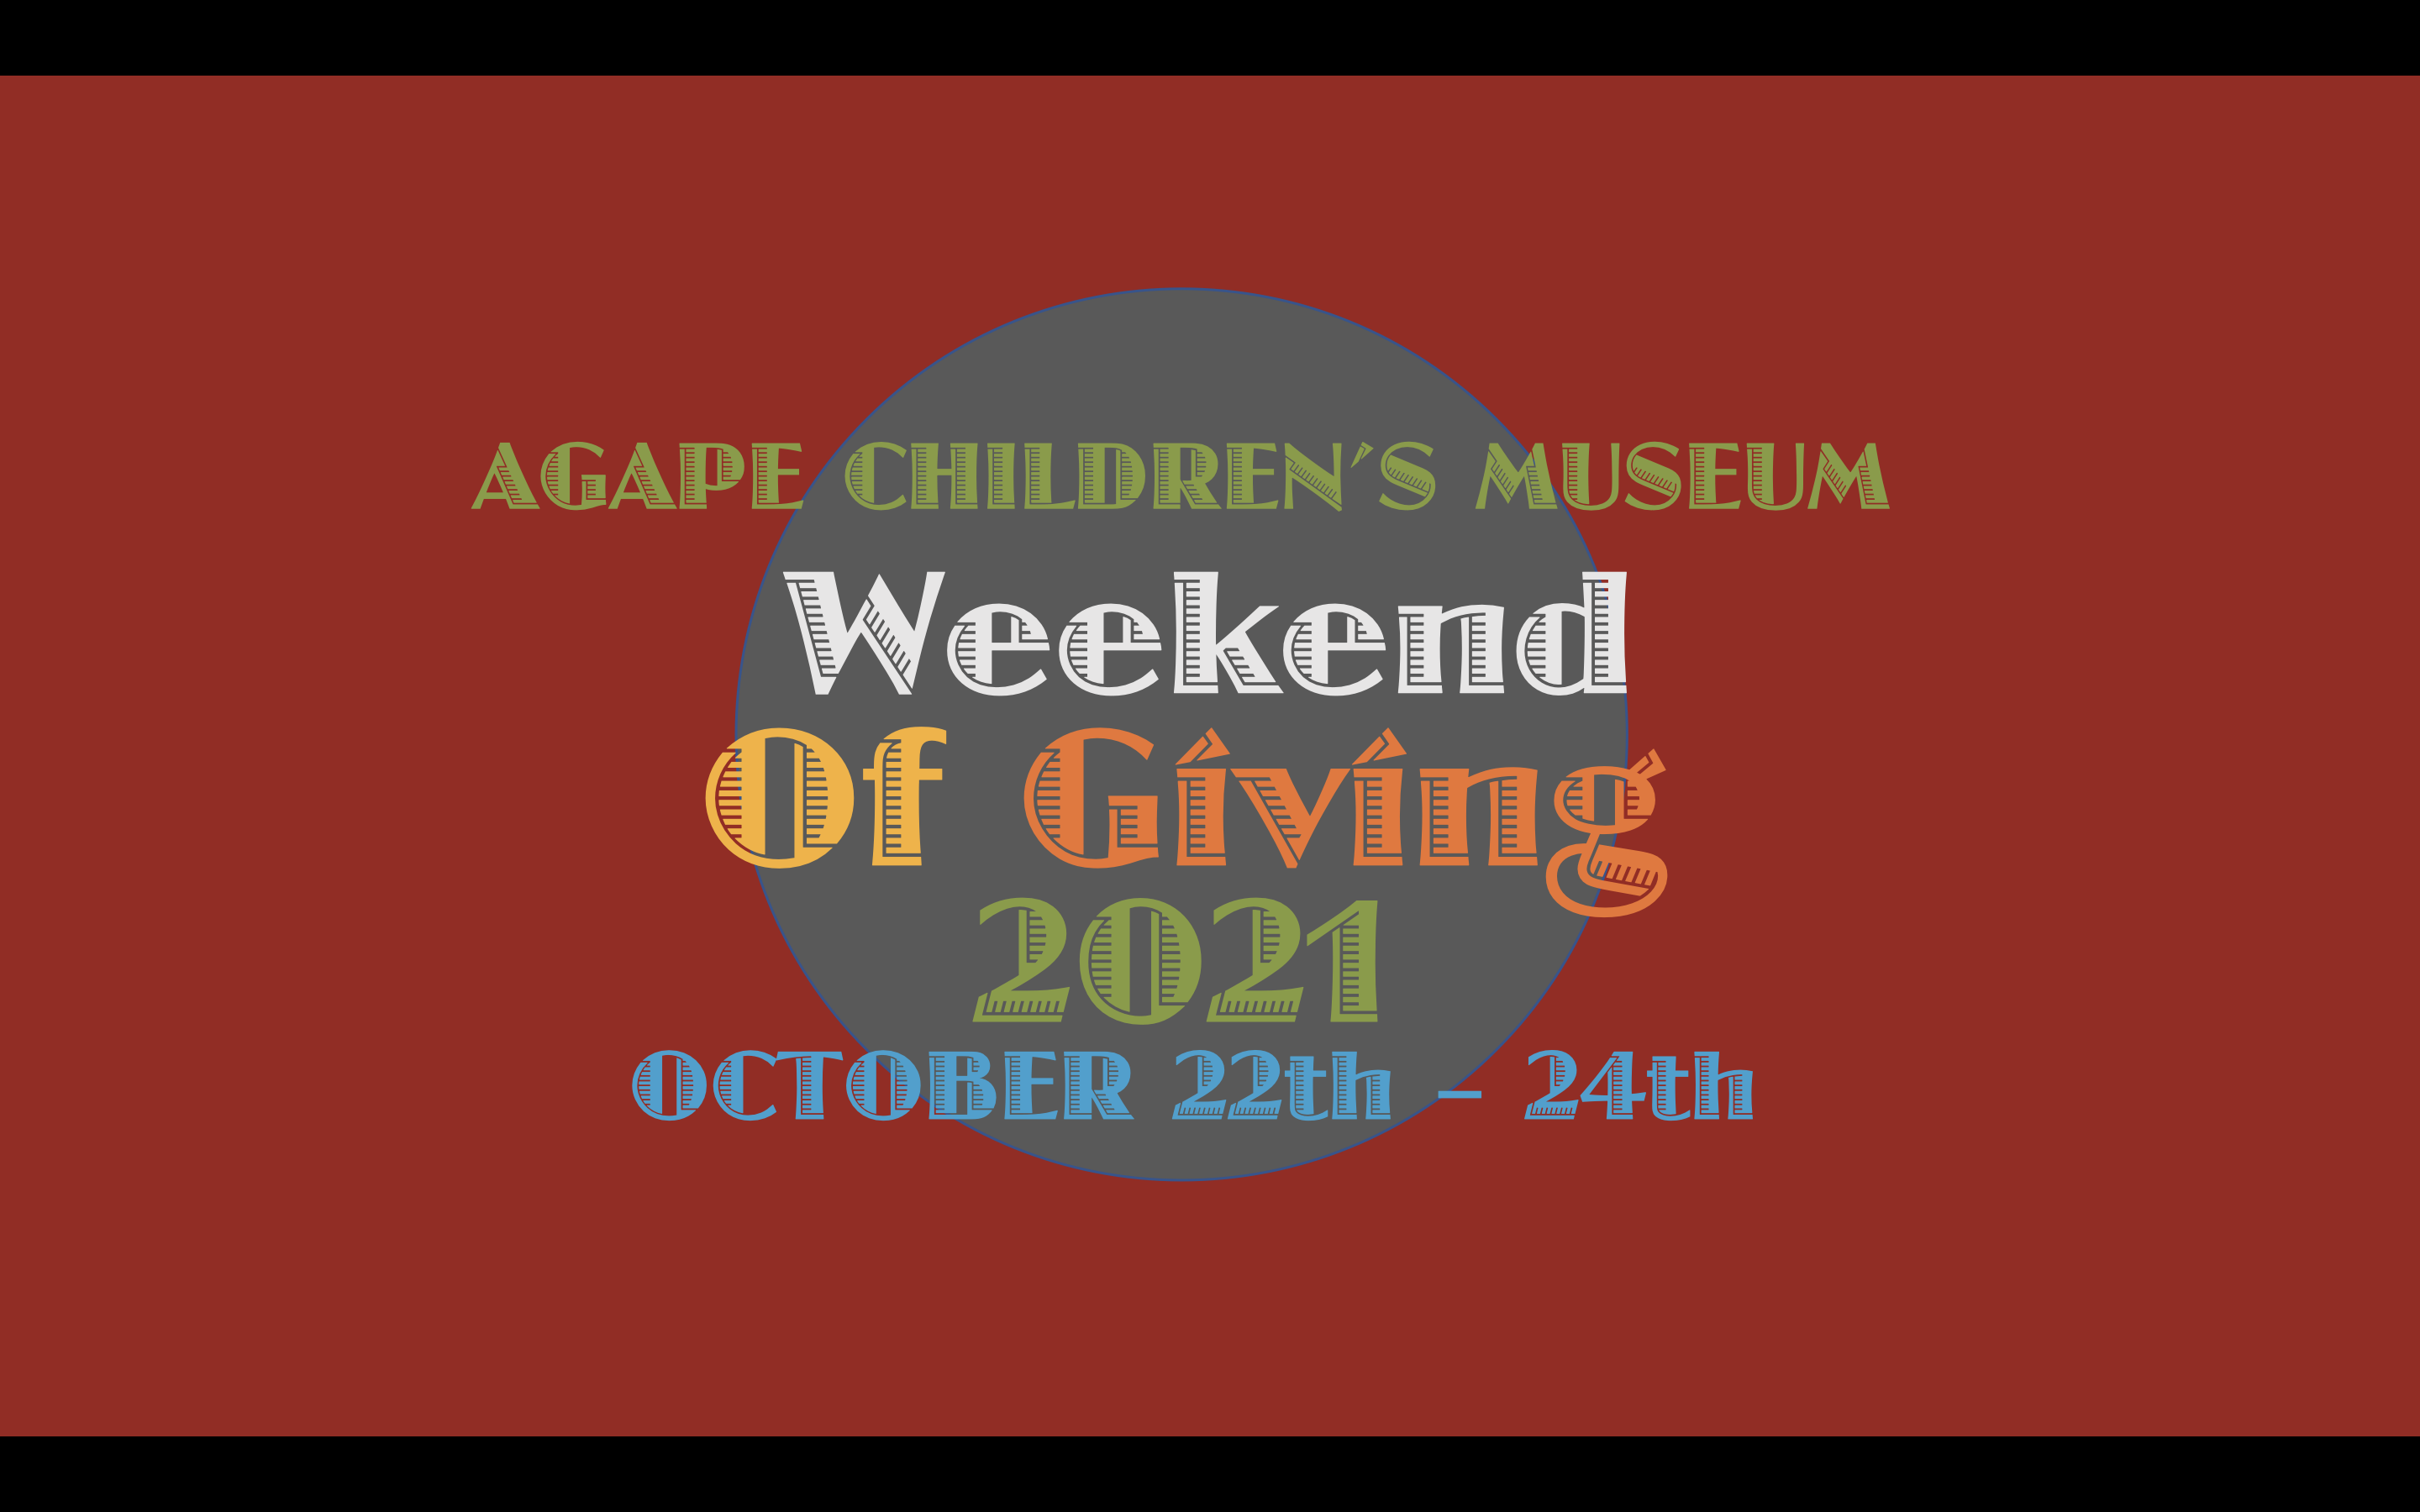 AGAPE CHILDREN'S MUSEUM WEEKEND OF GIVING 2021 OCTOBER 22nd – 24th